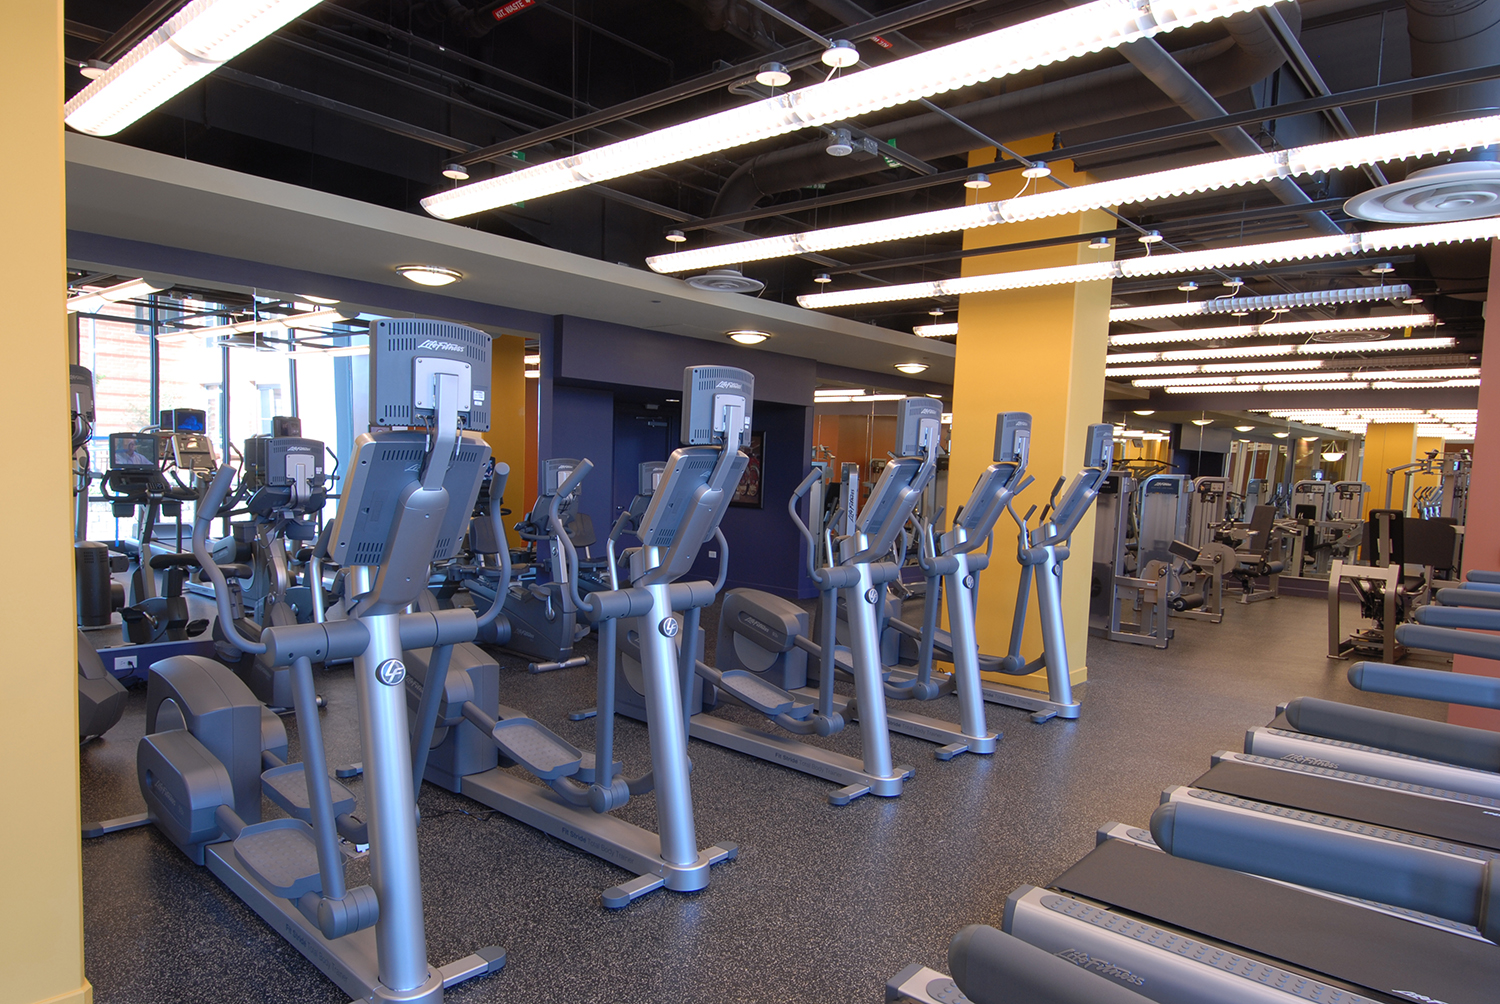 Fitness center at an apartment building